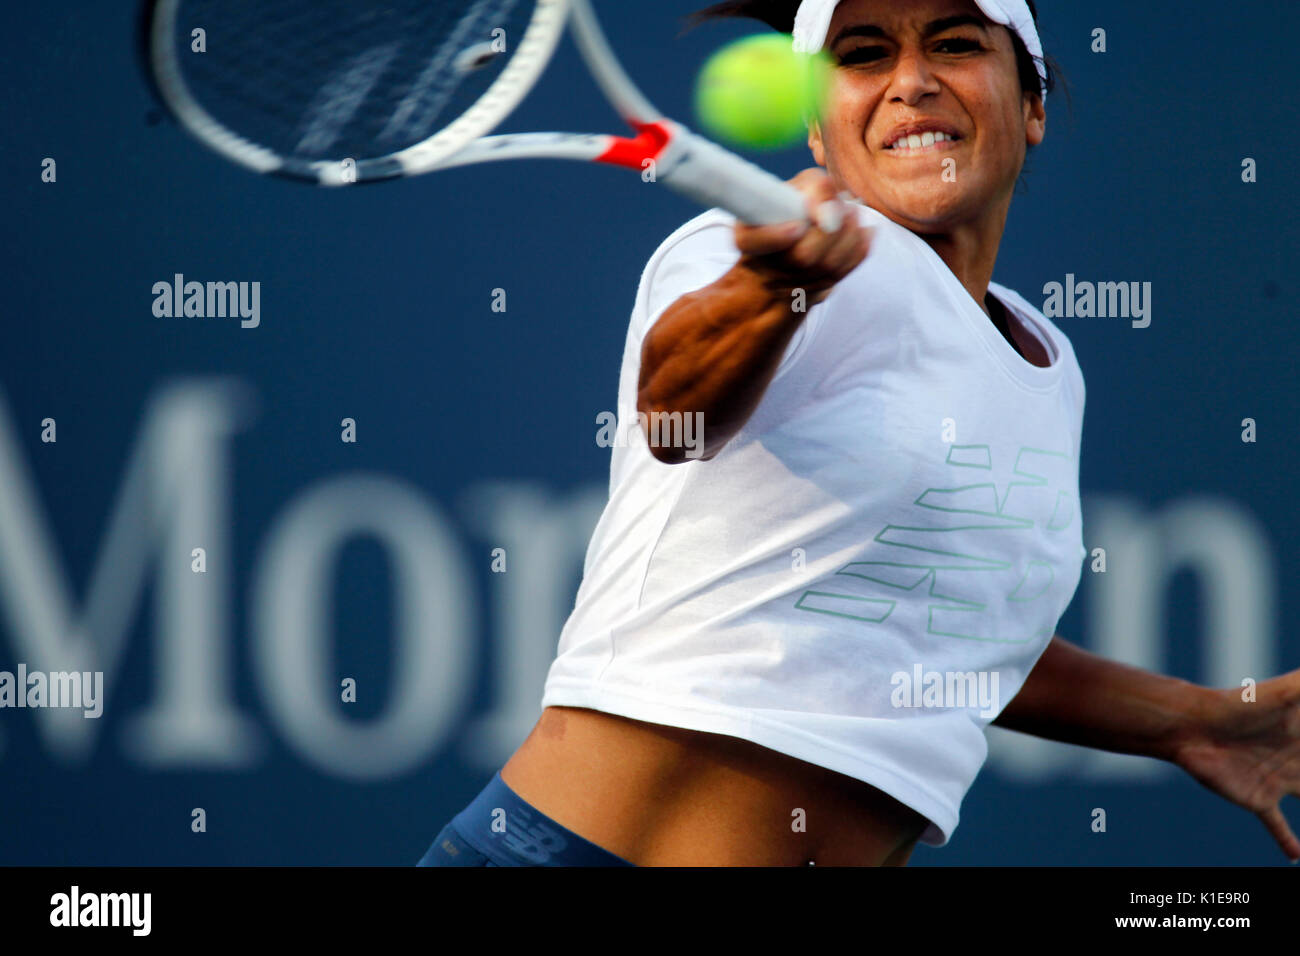 New York, United States. 26th Aug, 2017. US Open Tennis: New York, 26 August, 2017 - Heather Watson of Great Britain - Stock Image